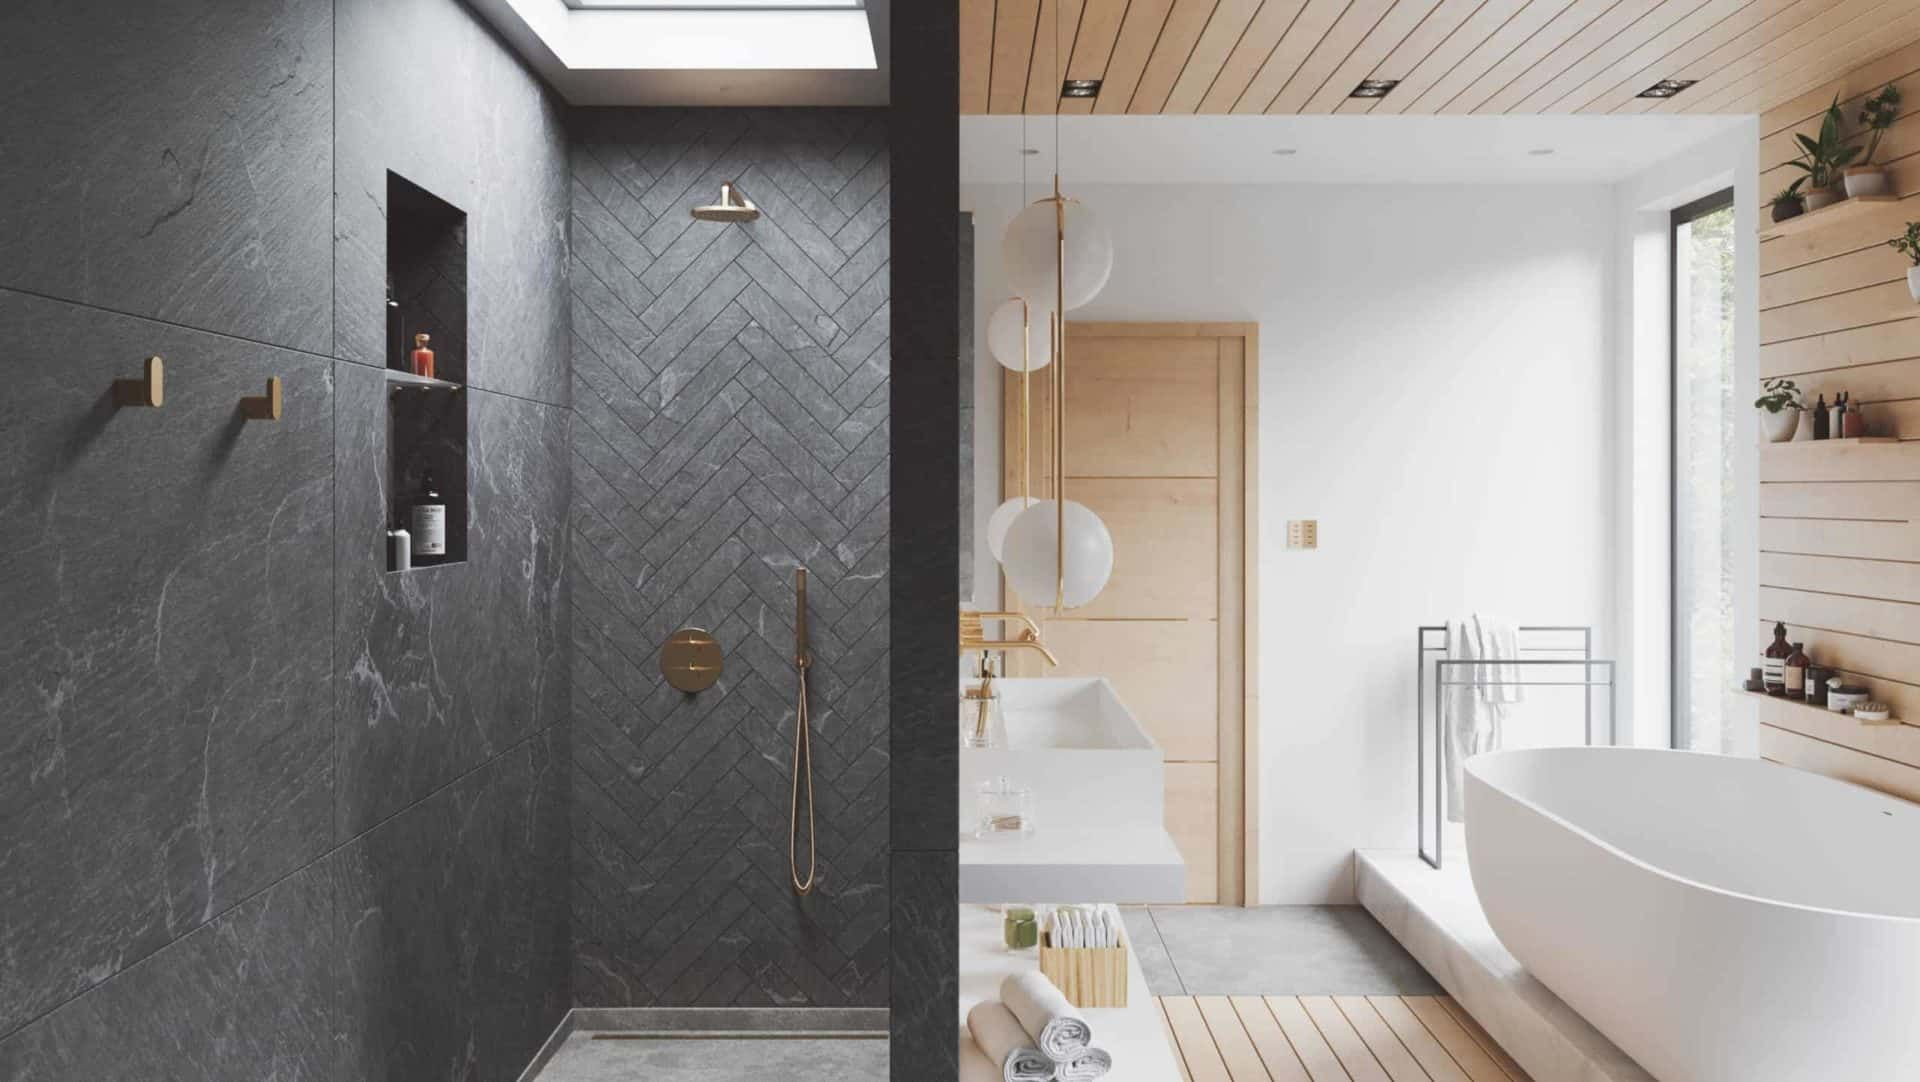 36 Luxury Walk-In Shower Ideas for your Bathroom | Showers ...